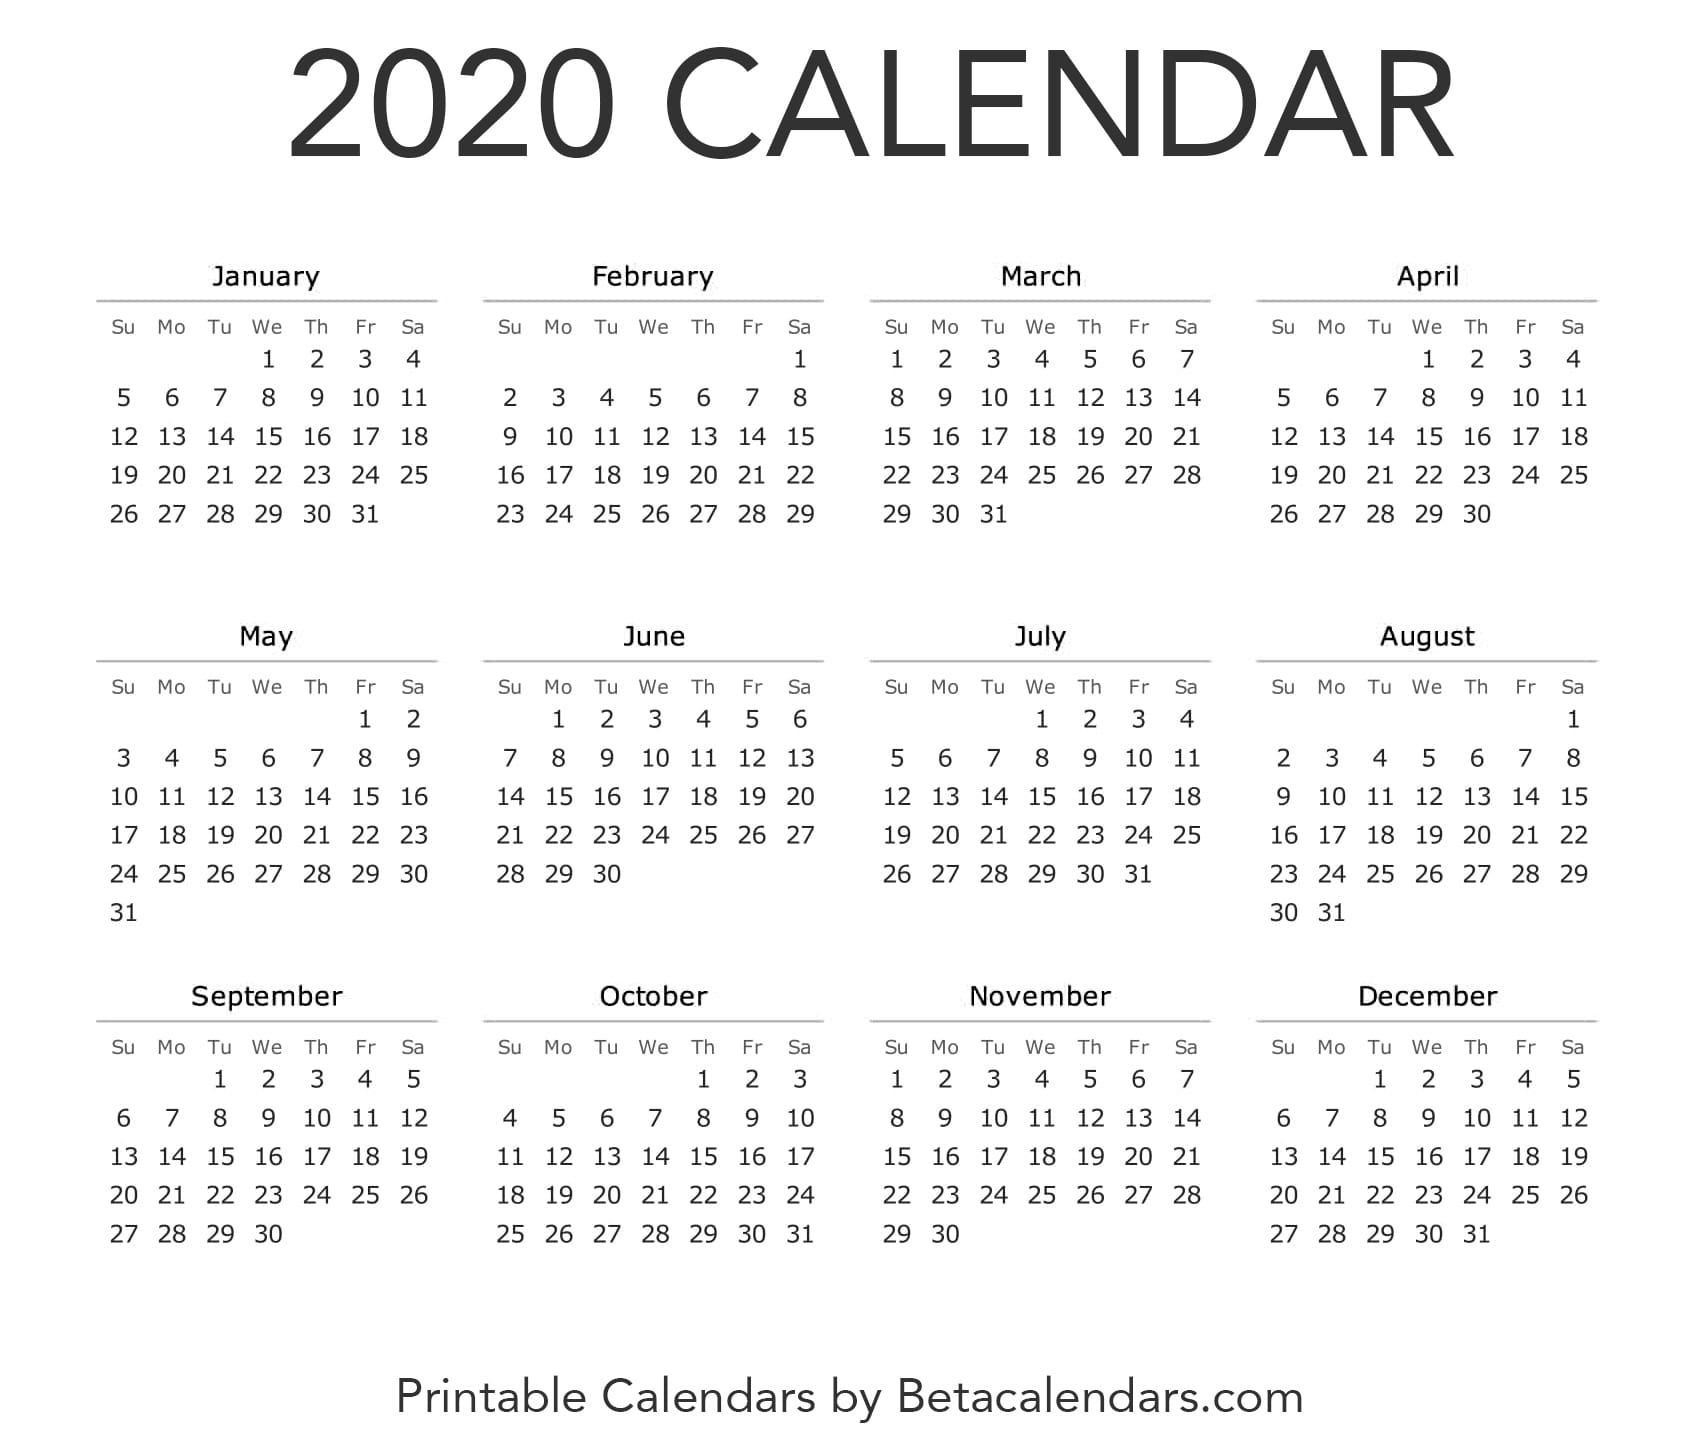 2020 Calendar - Free Printable Yearly Calendar 2020 (With